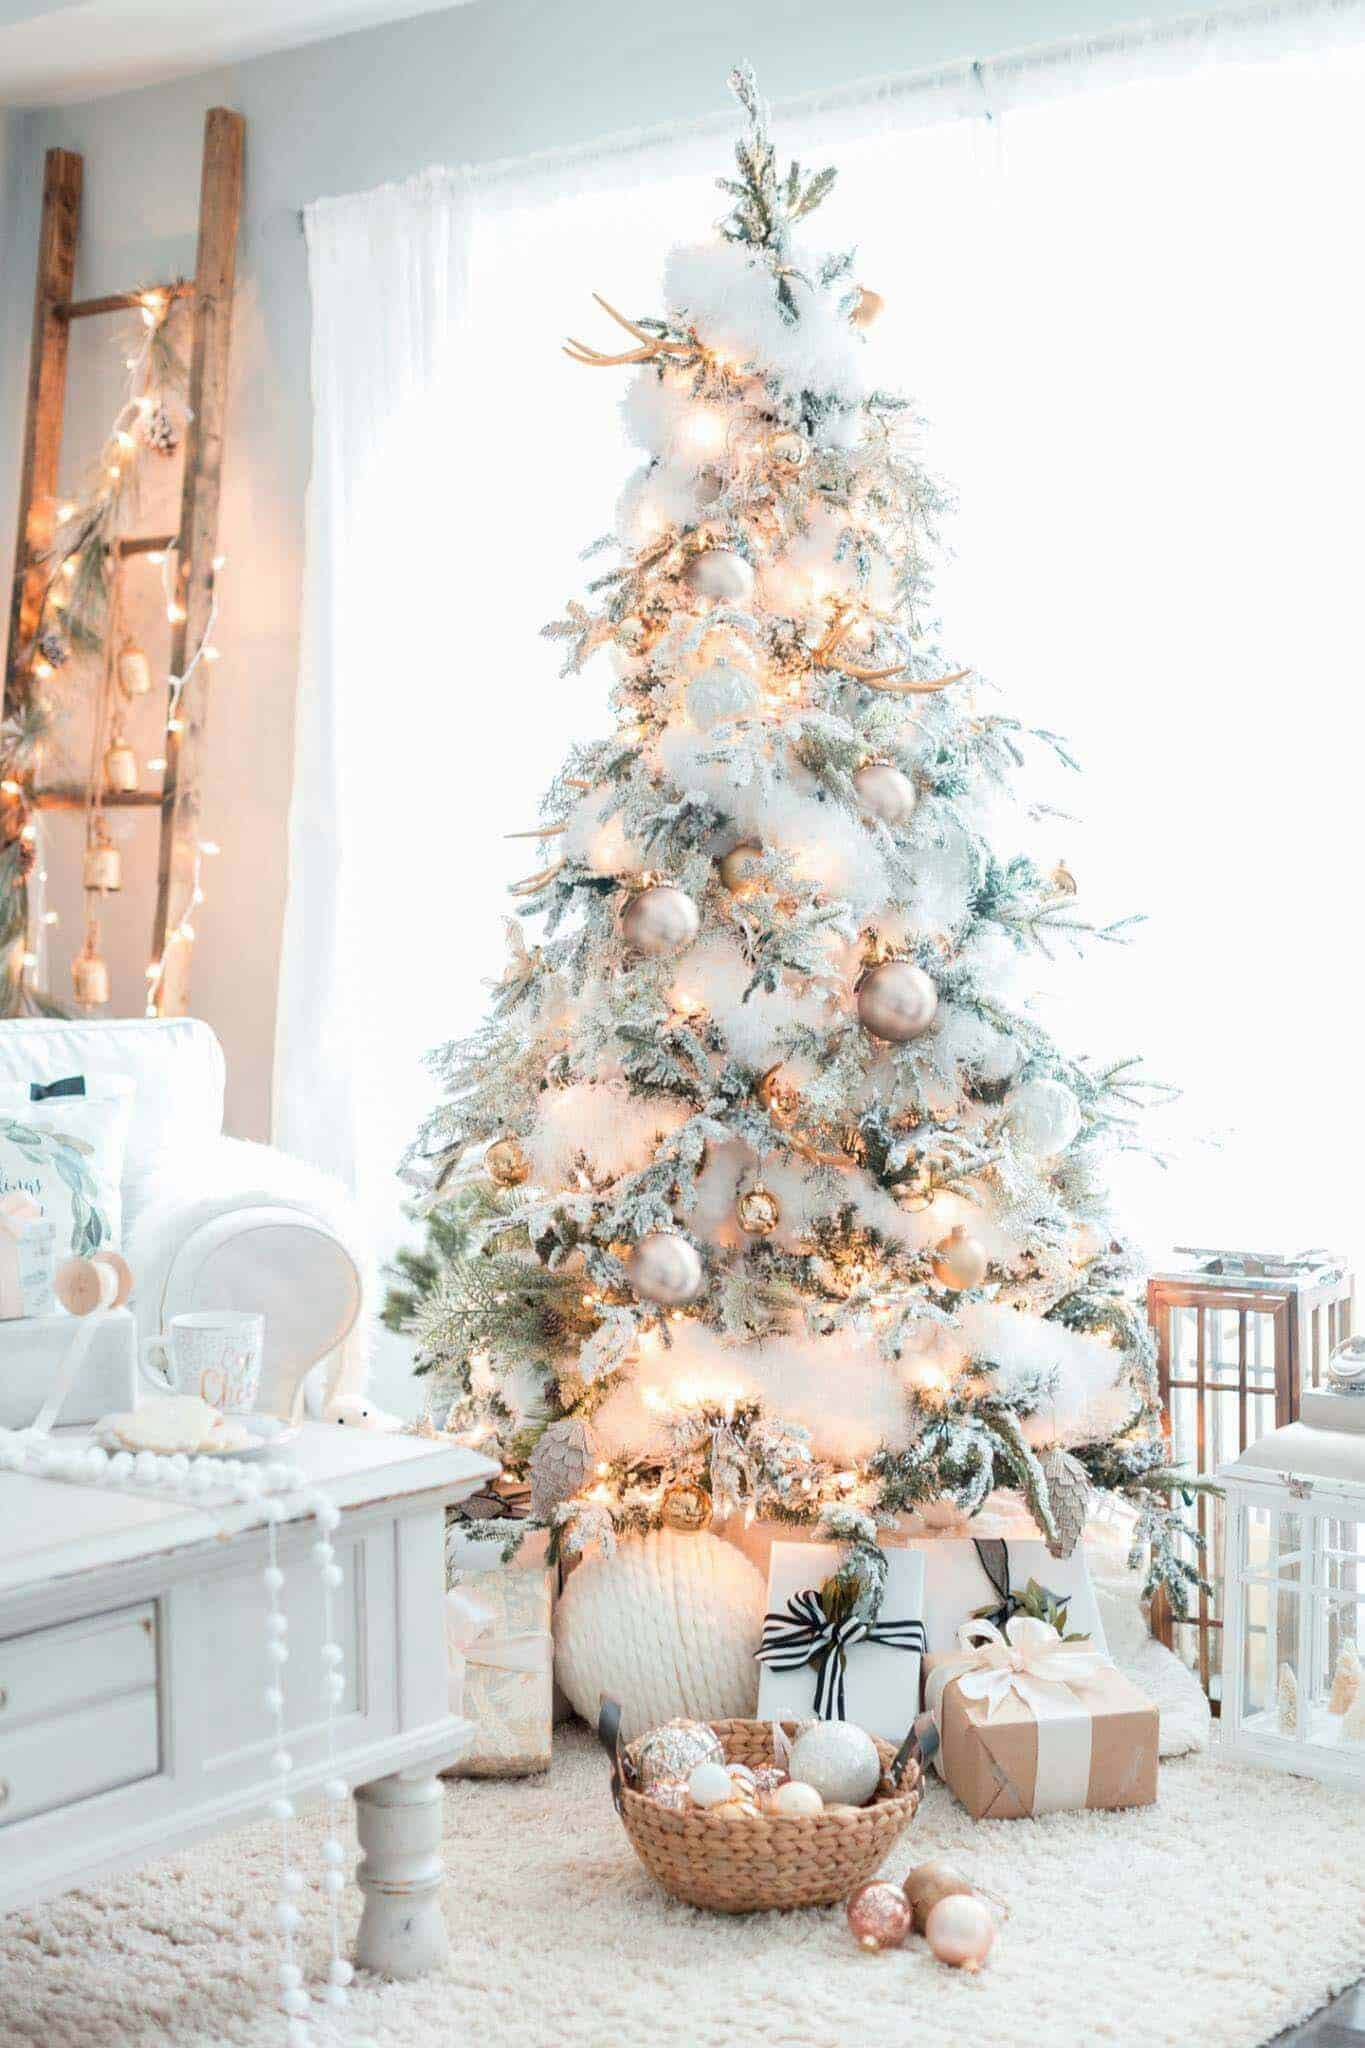 40+ Warm And Cozy Farmhouse-Inspired Christmas Decorating Ideas